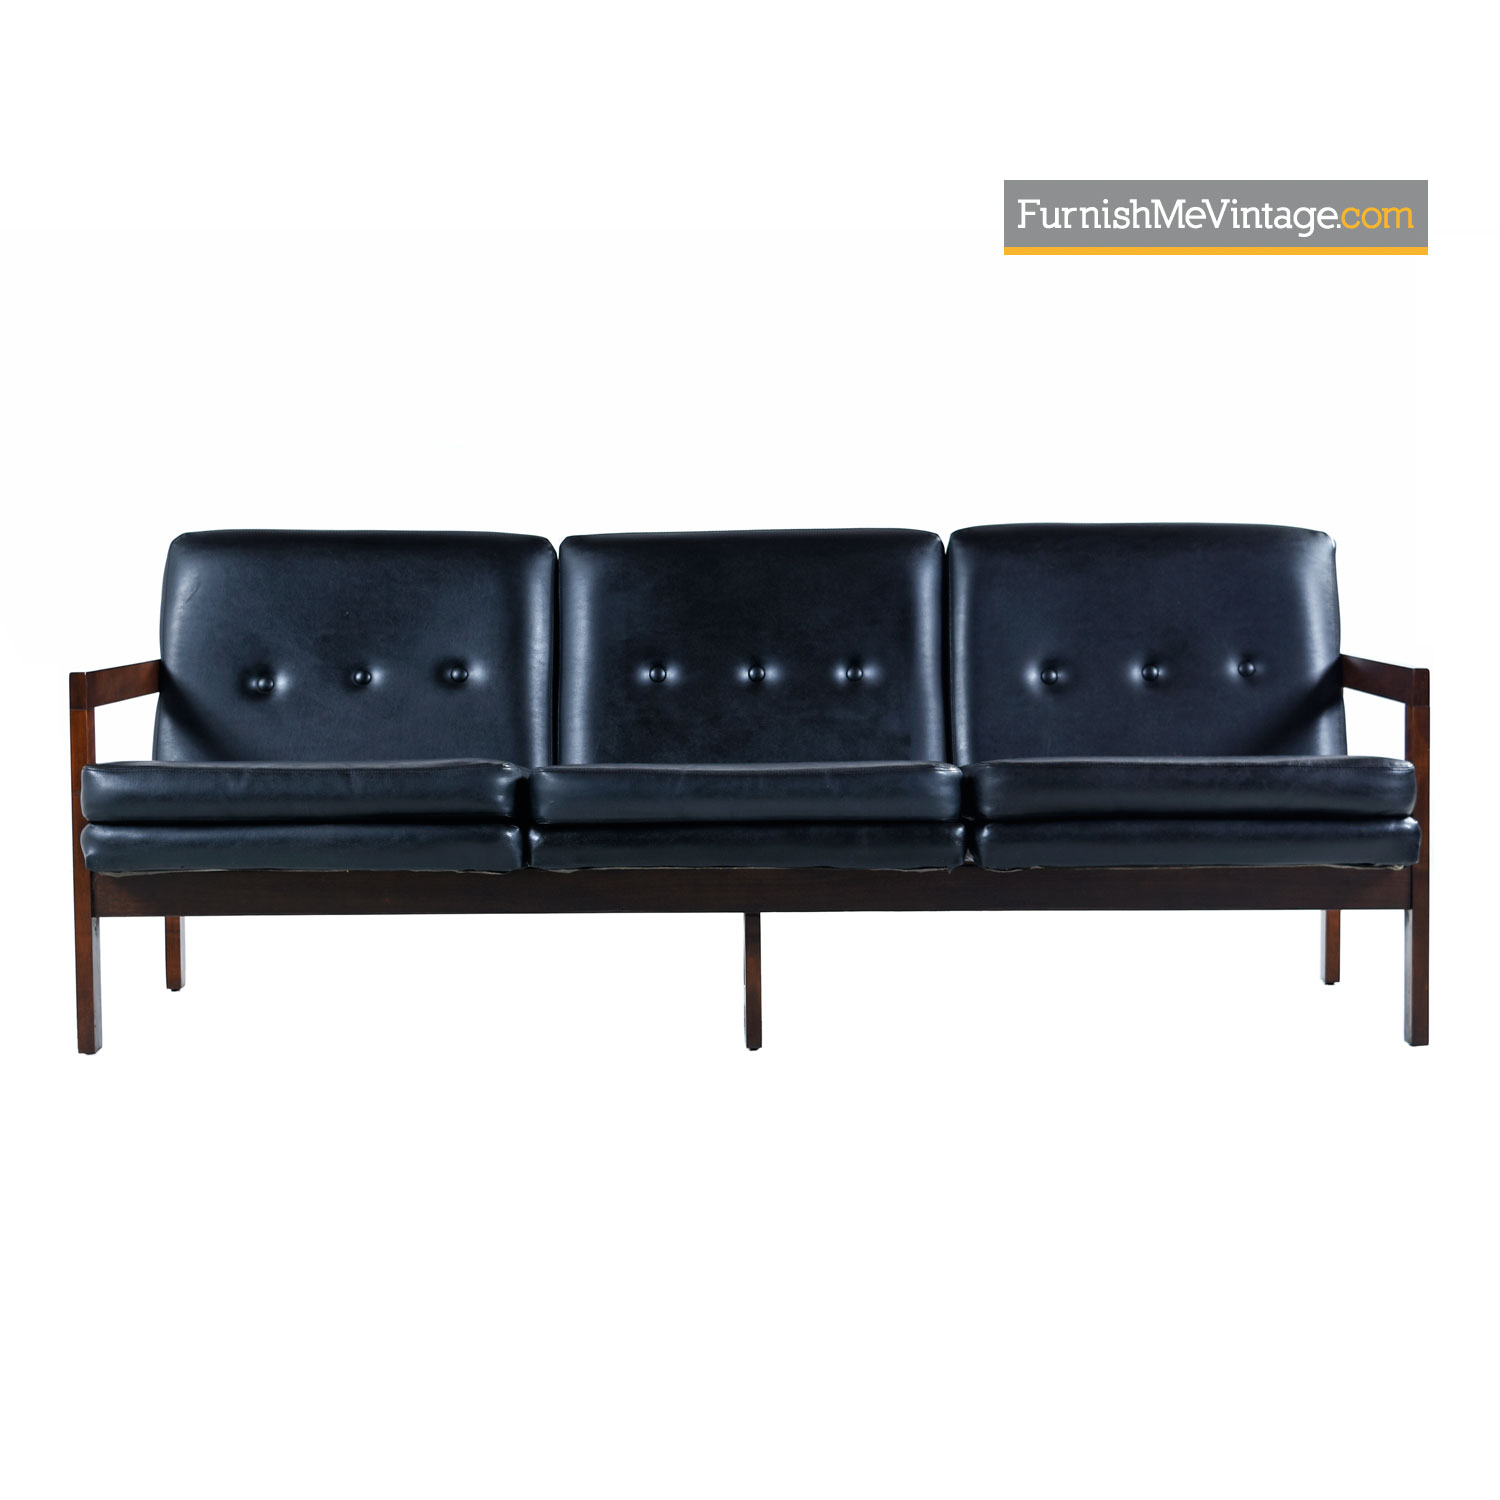 Beech Wood Mid-Century Modern Black Leather Sofa Couch With Button Tufted  Backs